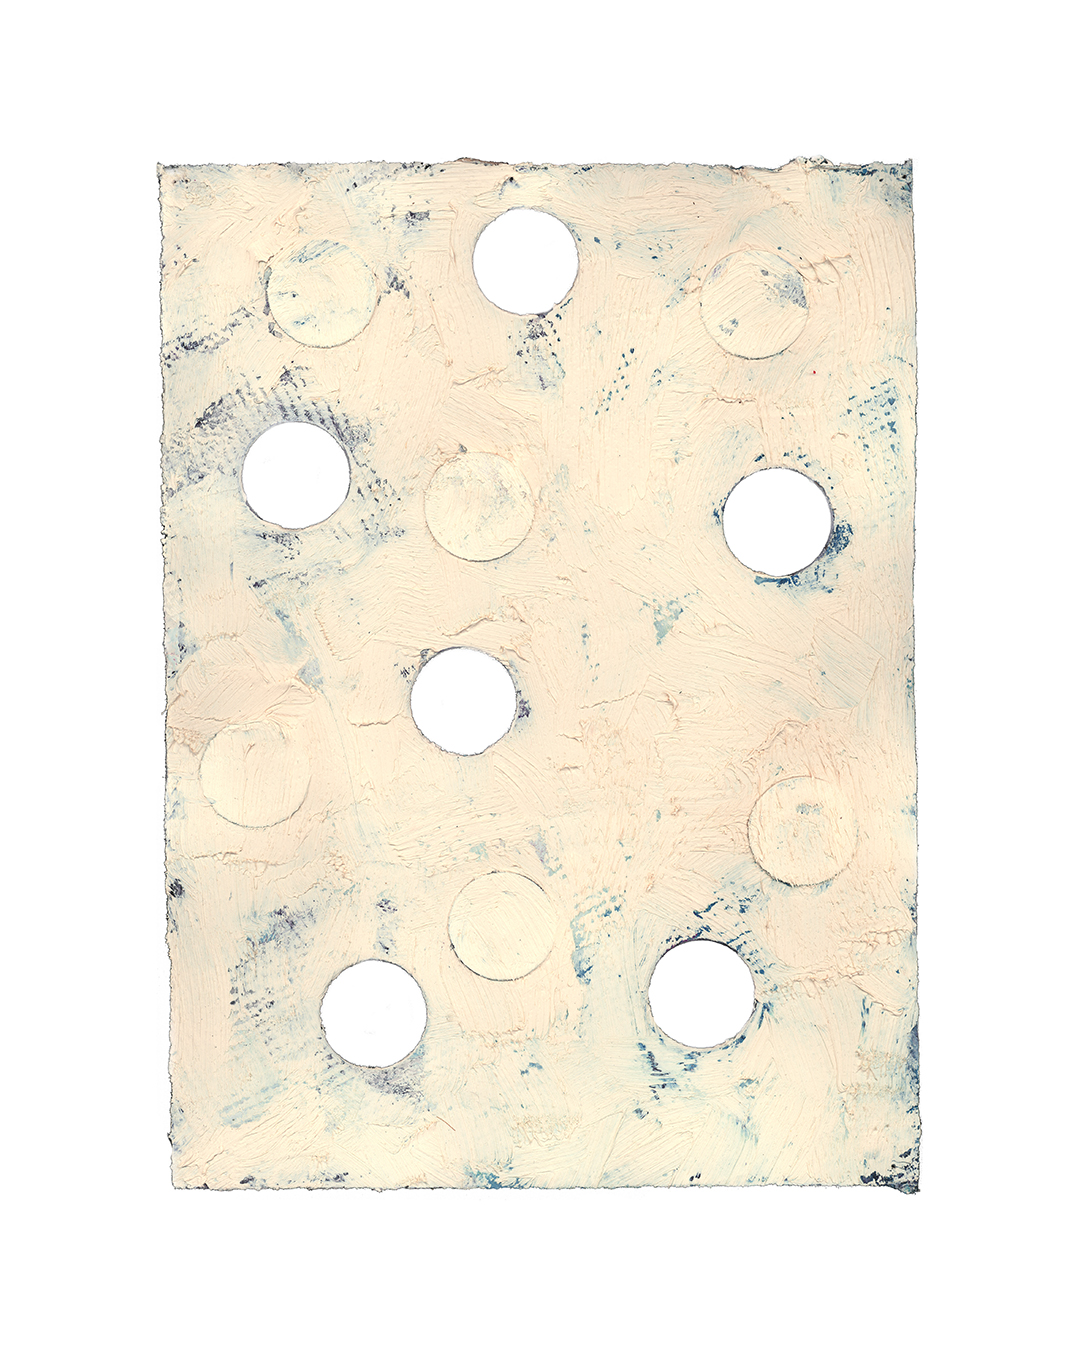 Piet Dieleman, untitled, 2020, painting, tempera paint, pigment on laser woodprint on paper, 390 x 285 mm, €930